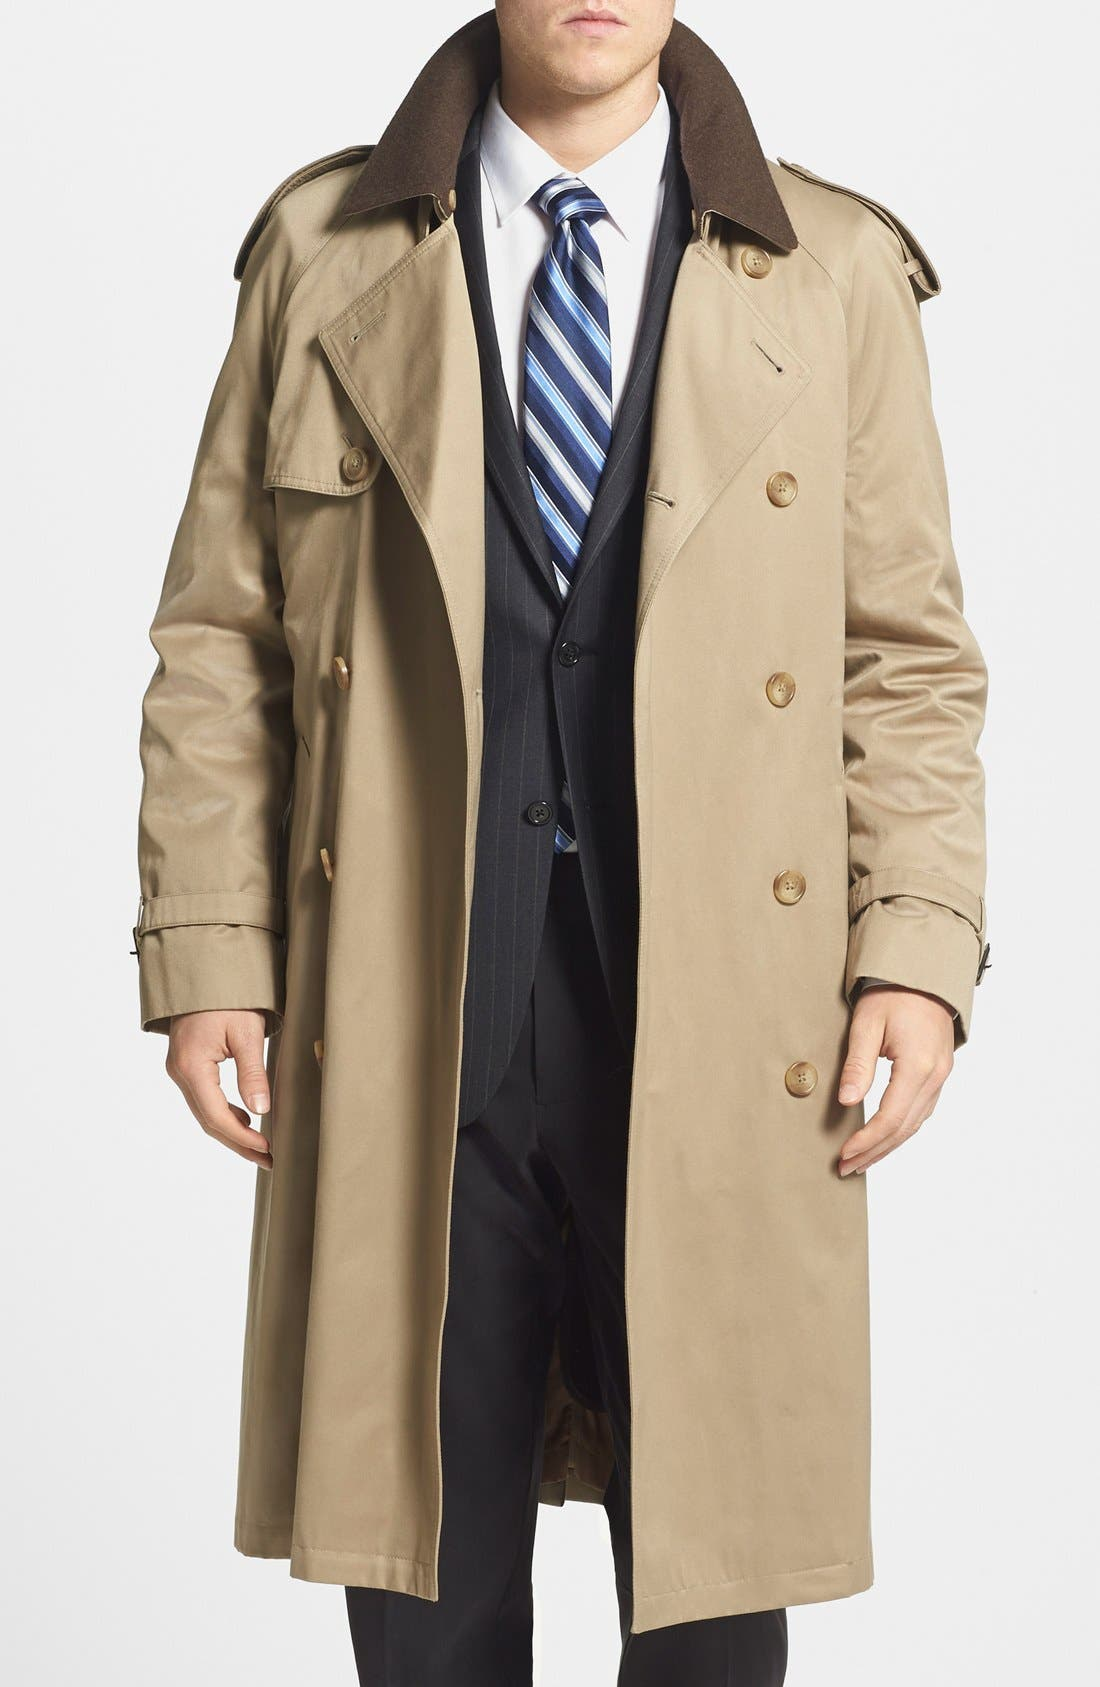 Men's Vintage Style Coats and Jackets Mens Big  Tall Hart Schaffner Marx Barrington Classic Fit Cotton Blend Trench Coat Size 44 L - Beige $177.75 AT vintagedancer.com